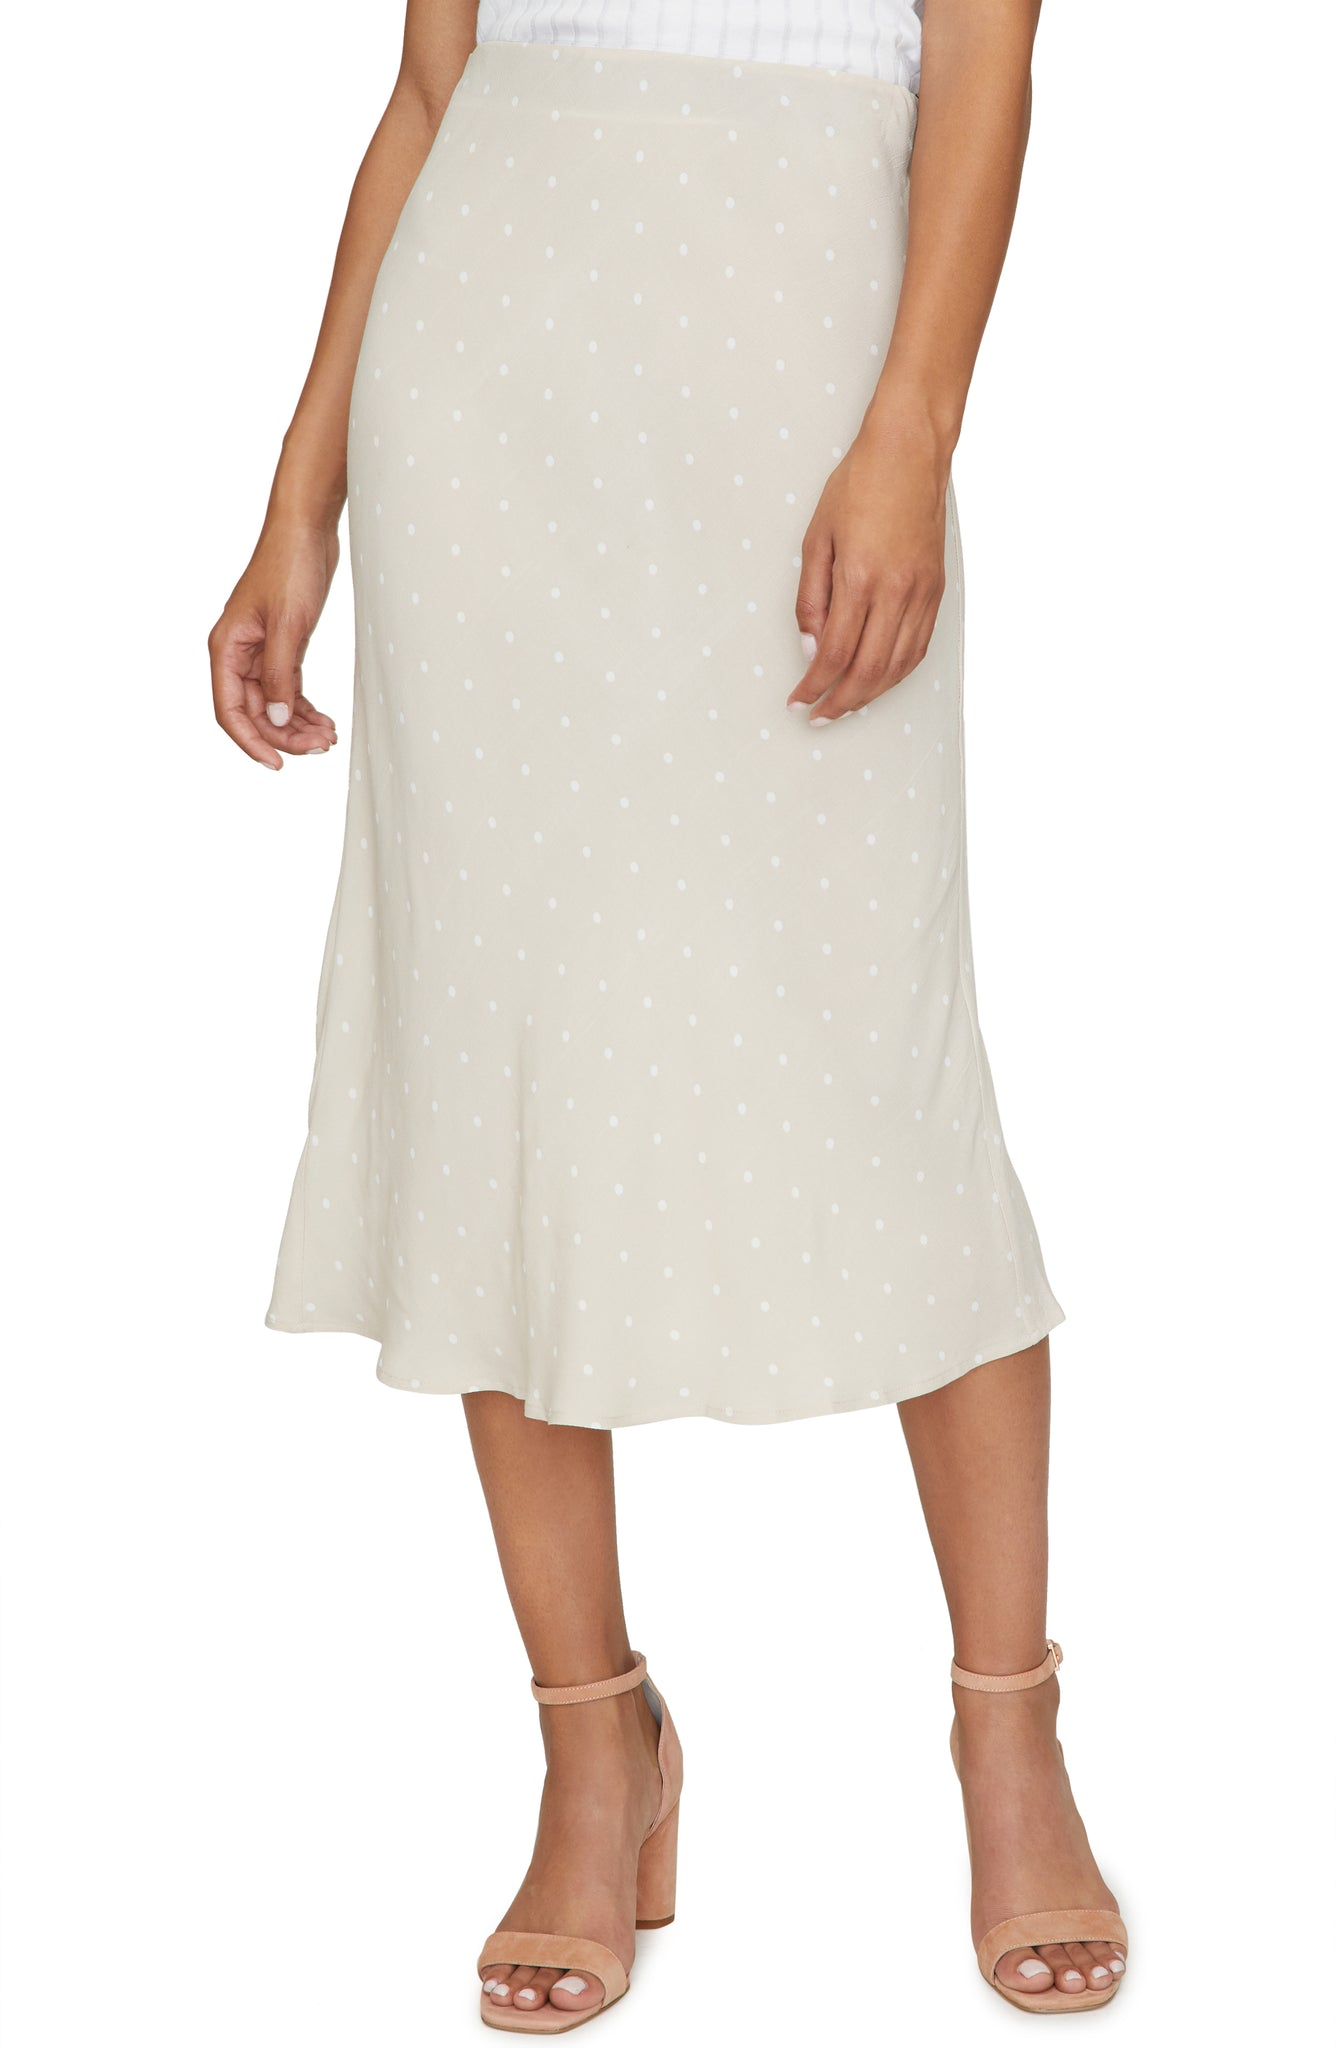 Dot Everyday midi Skirt